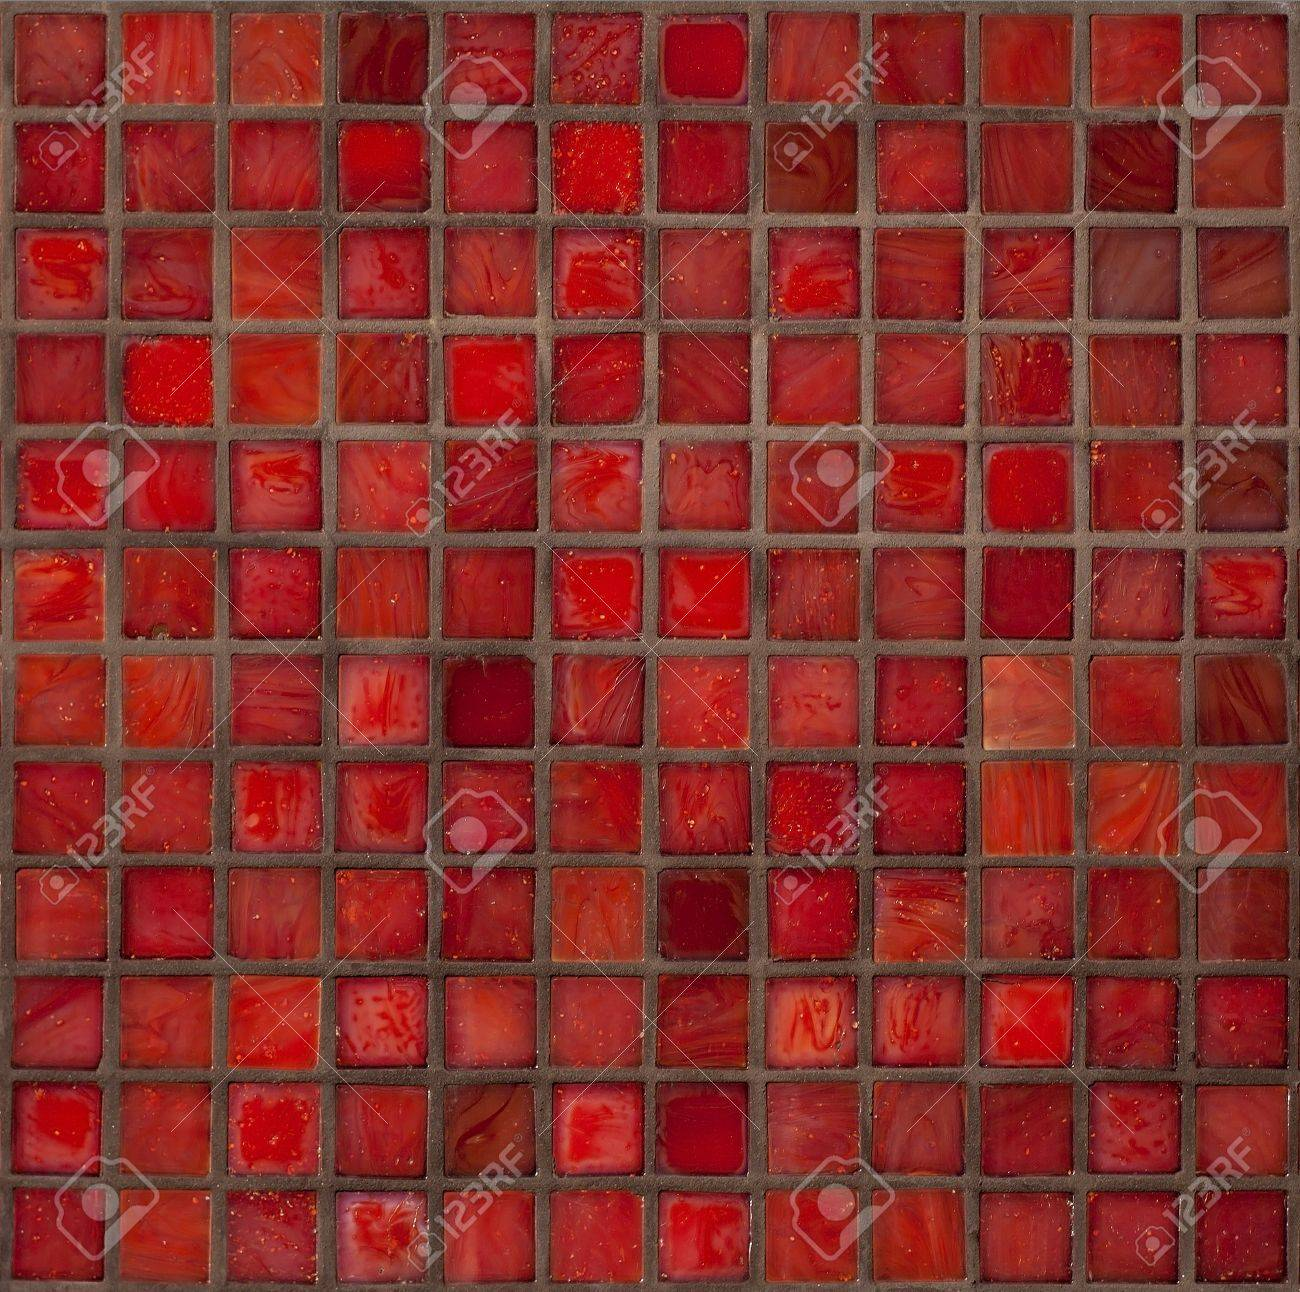 decorative glass tiles in a bright red small squares